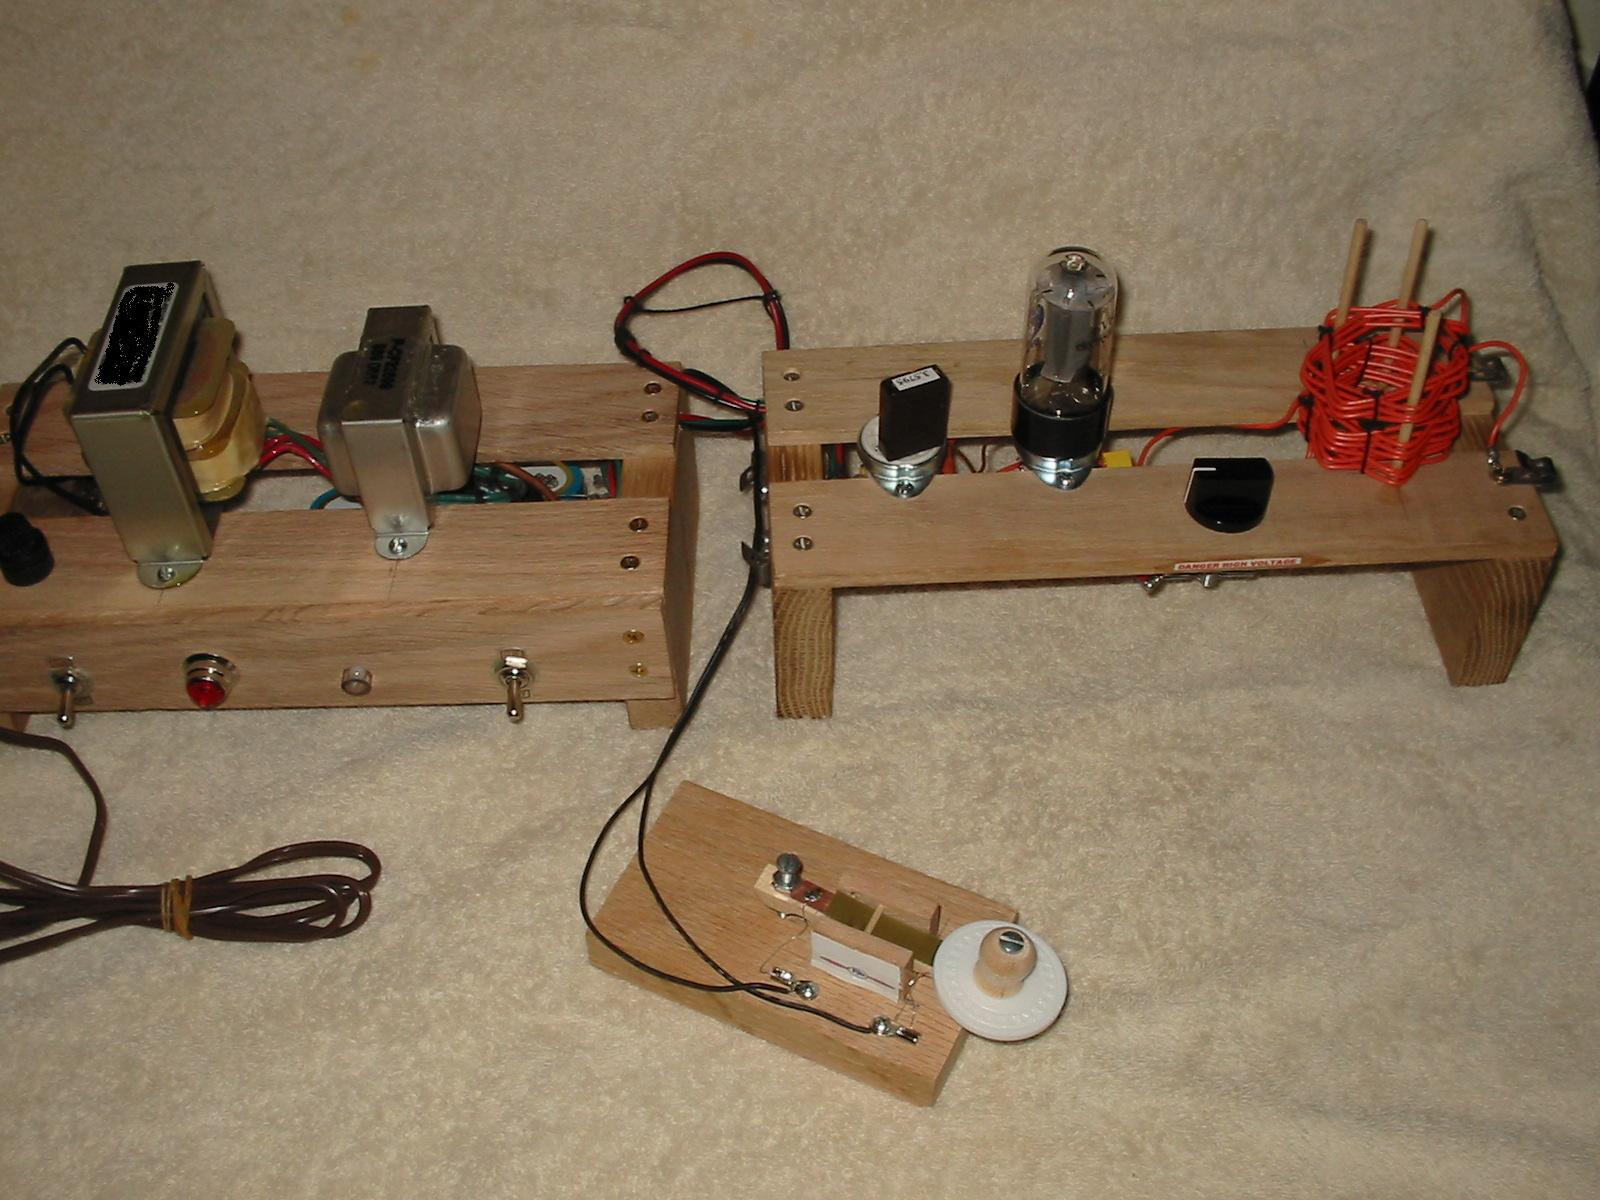 Pastime Projects 6V6 Transmitter Kit, Power Supply, and Key